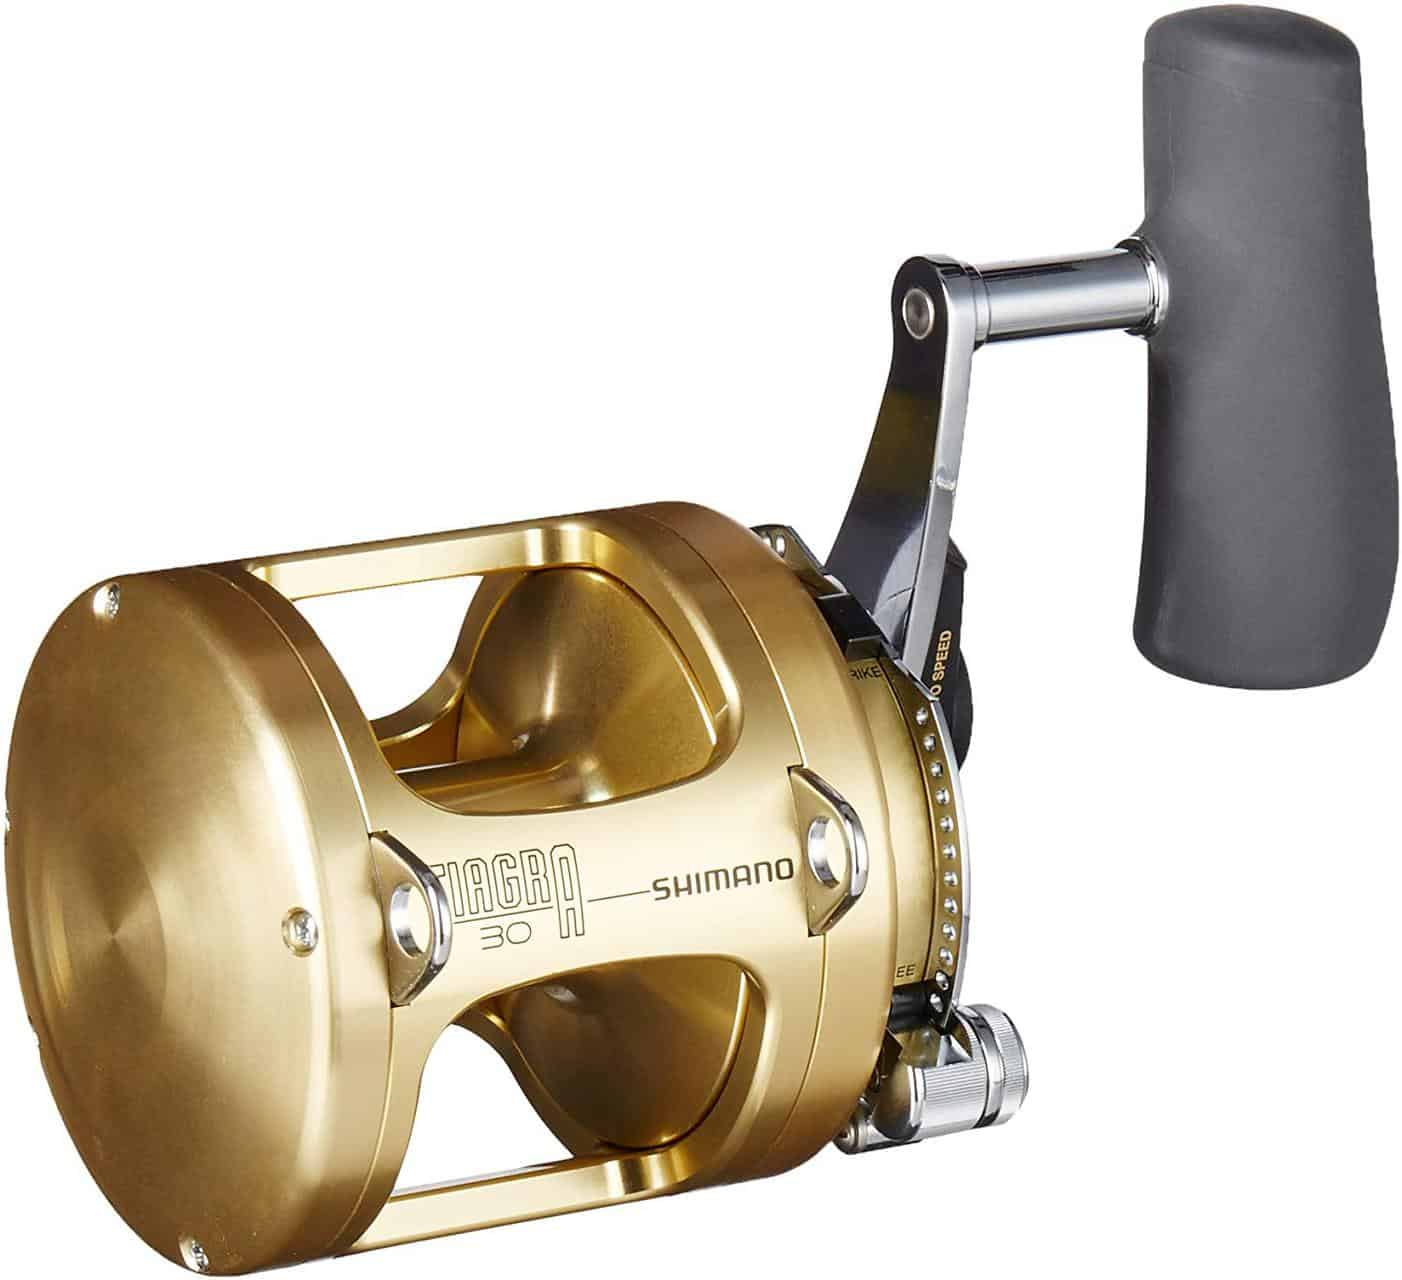 Tiagra Electric Fishing Reel by Shimano